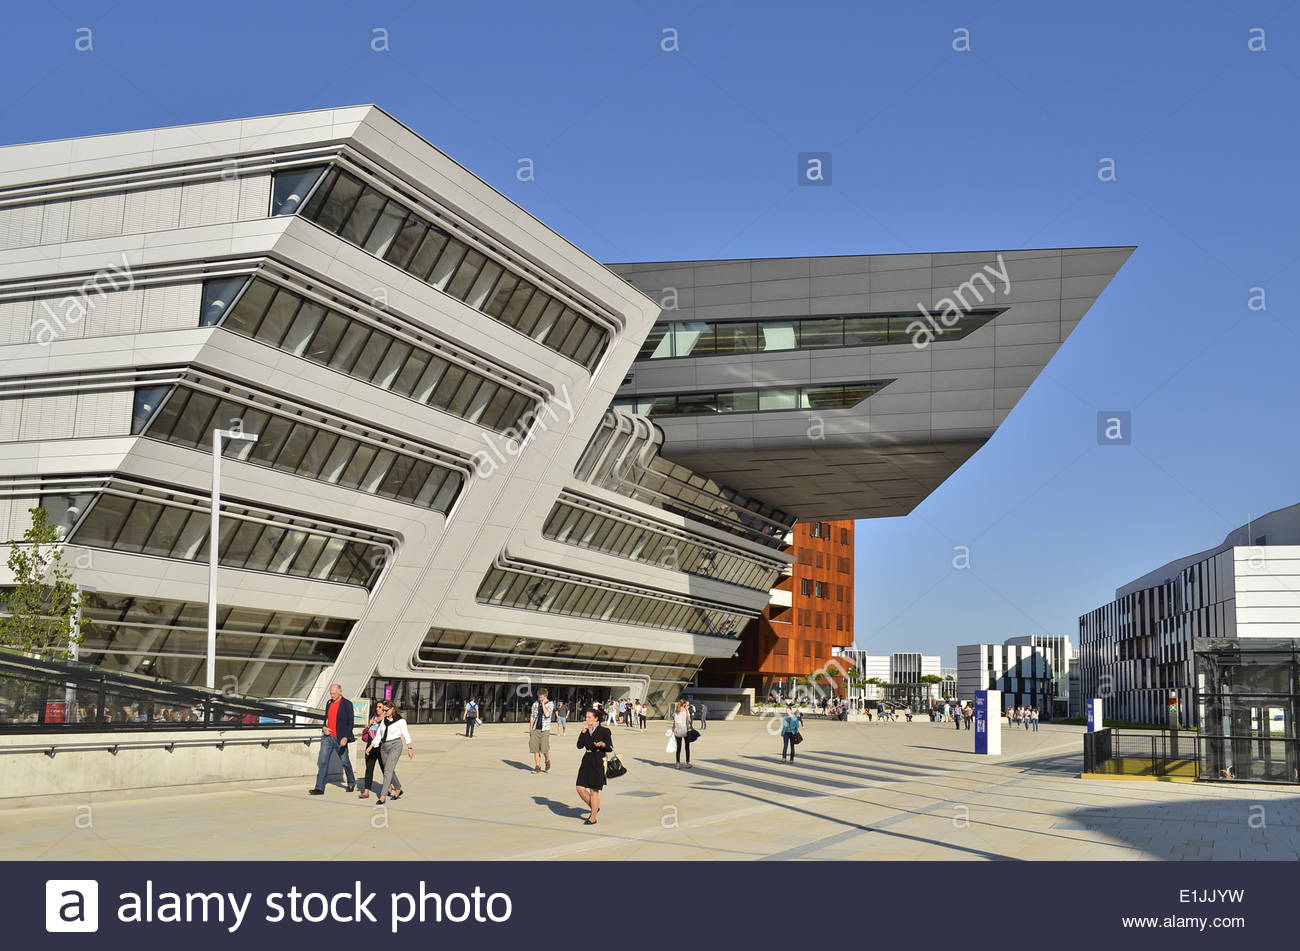 Vienna Austria - University of Economics and Business - Library and Learning Center designed by Zaha Hadid architects. Stock Photo